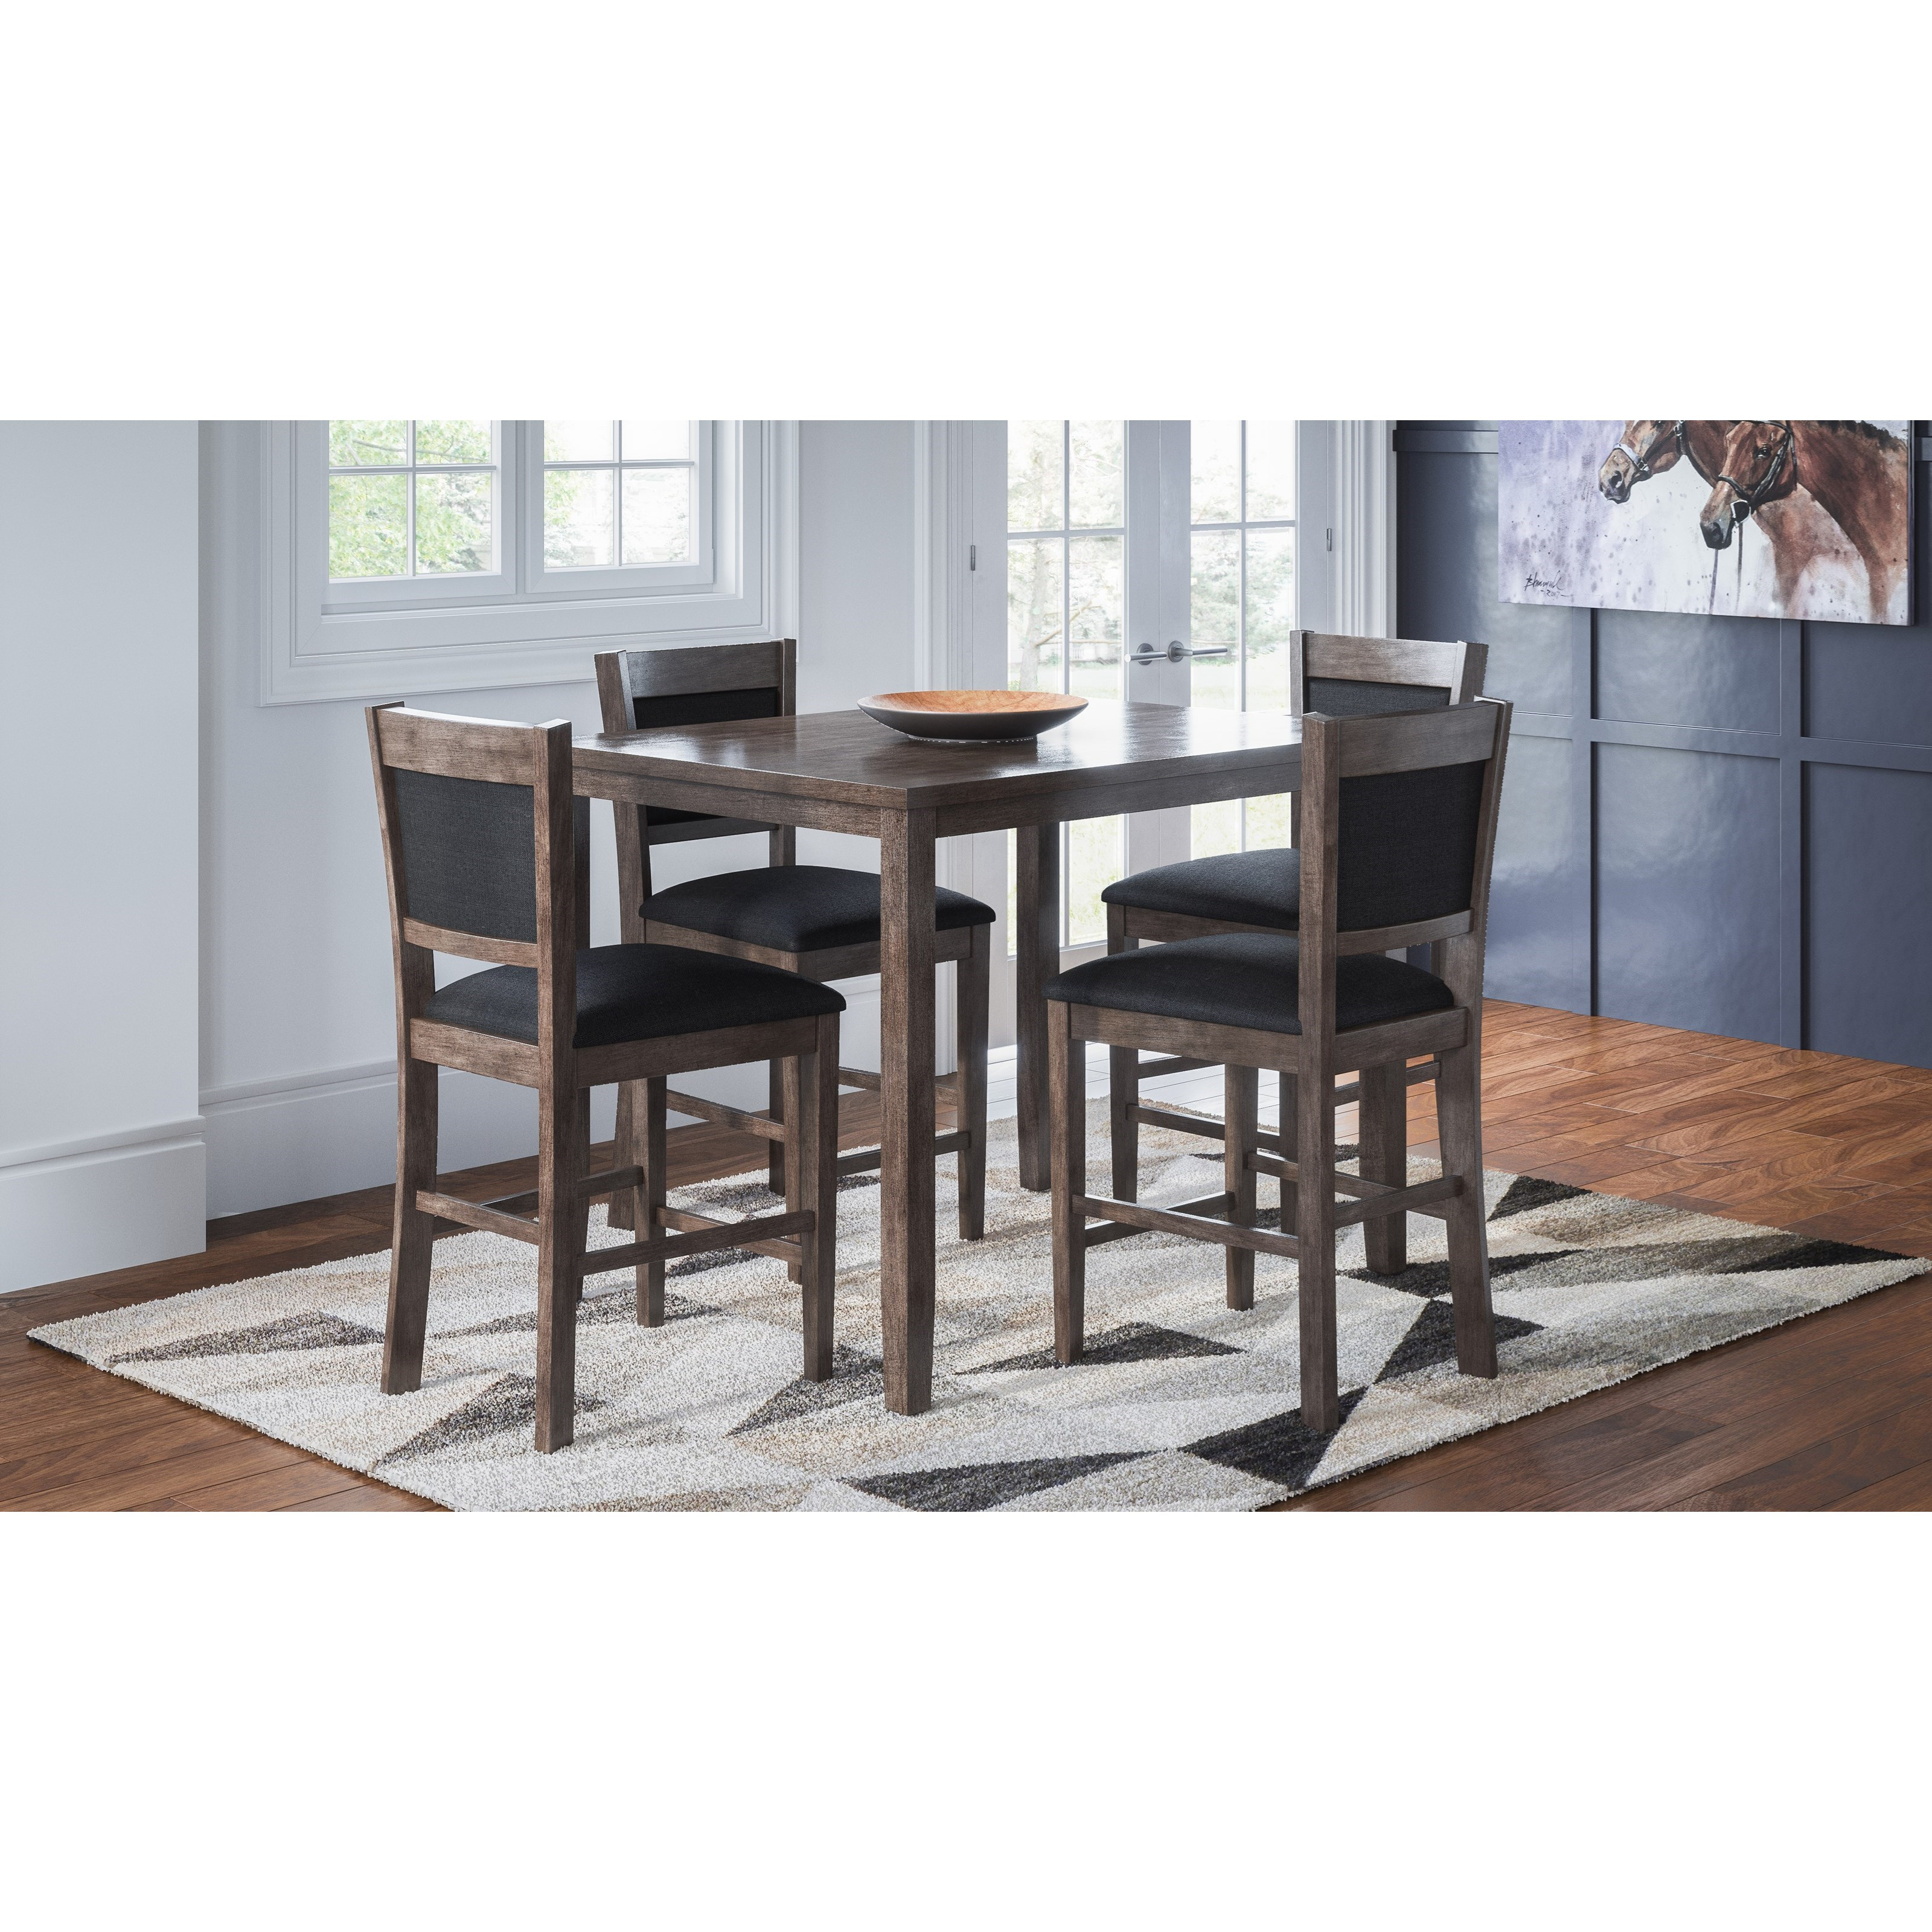 Greyson Heights 5 Pack Counter Height Dining Set by Jofran at Darvin Furniture